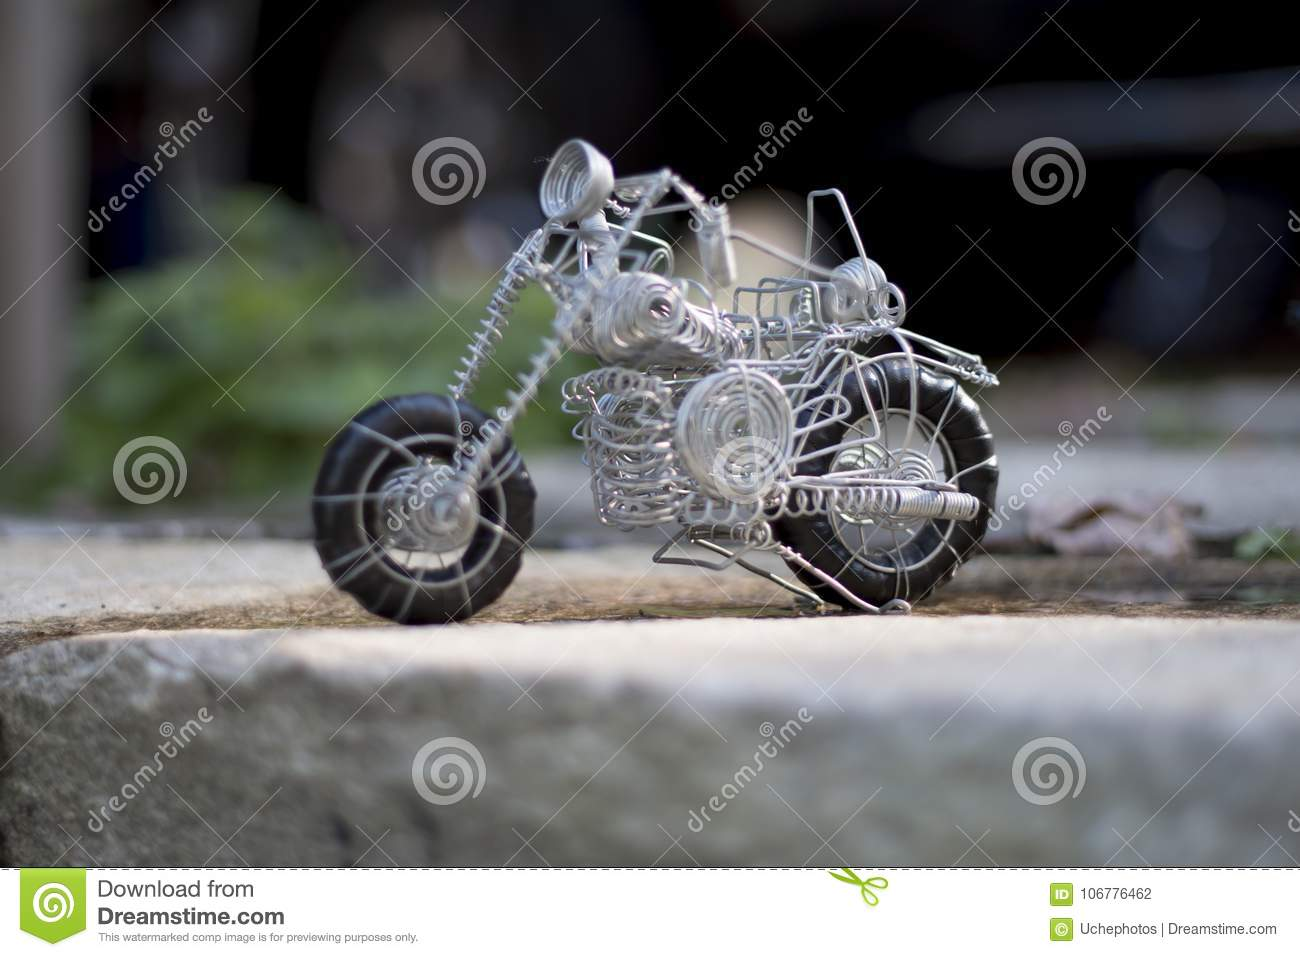 Wire Made Toy, A Motorbike Of Its Kind Stock Photo - Image of hand ...